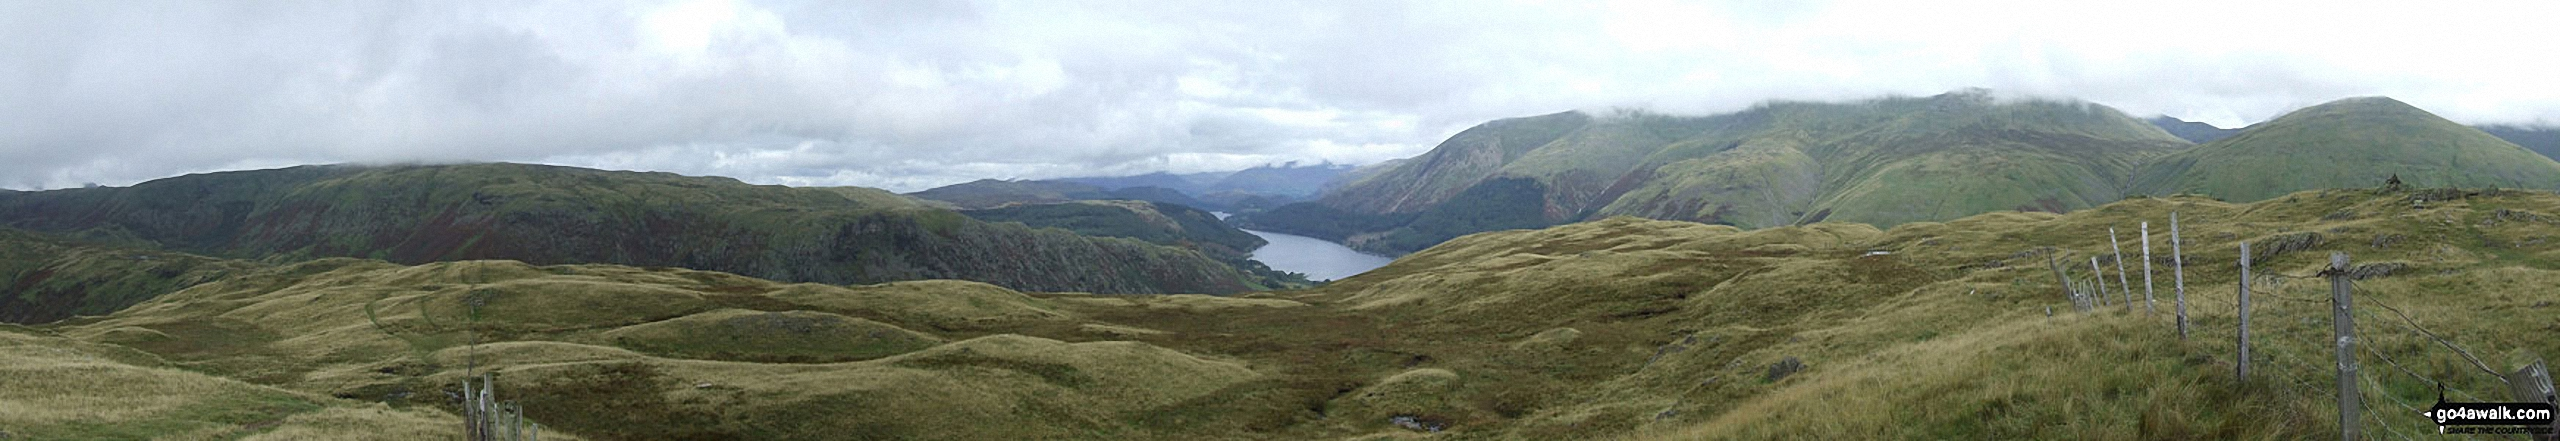 The Wythburn Fells (left) Thirlmere, Helvellyn (in mist) and Seat Sandal (right) from Steel Fell (Dead Pike)